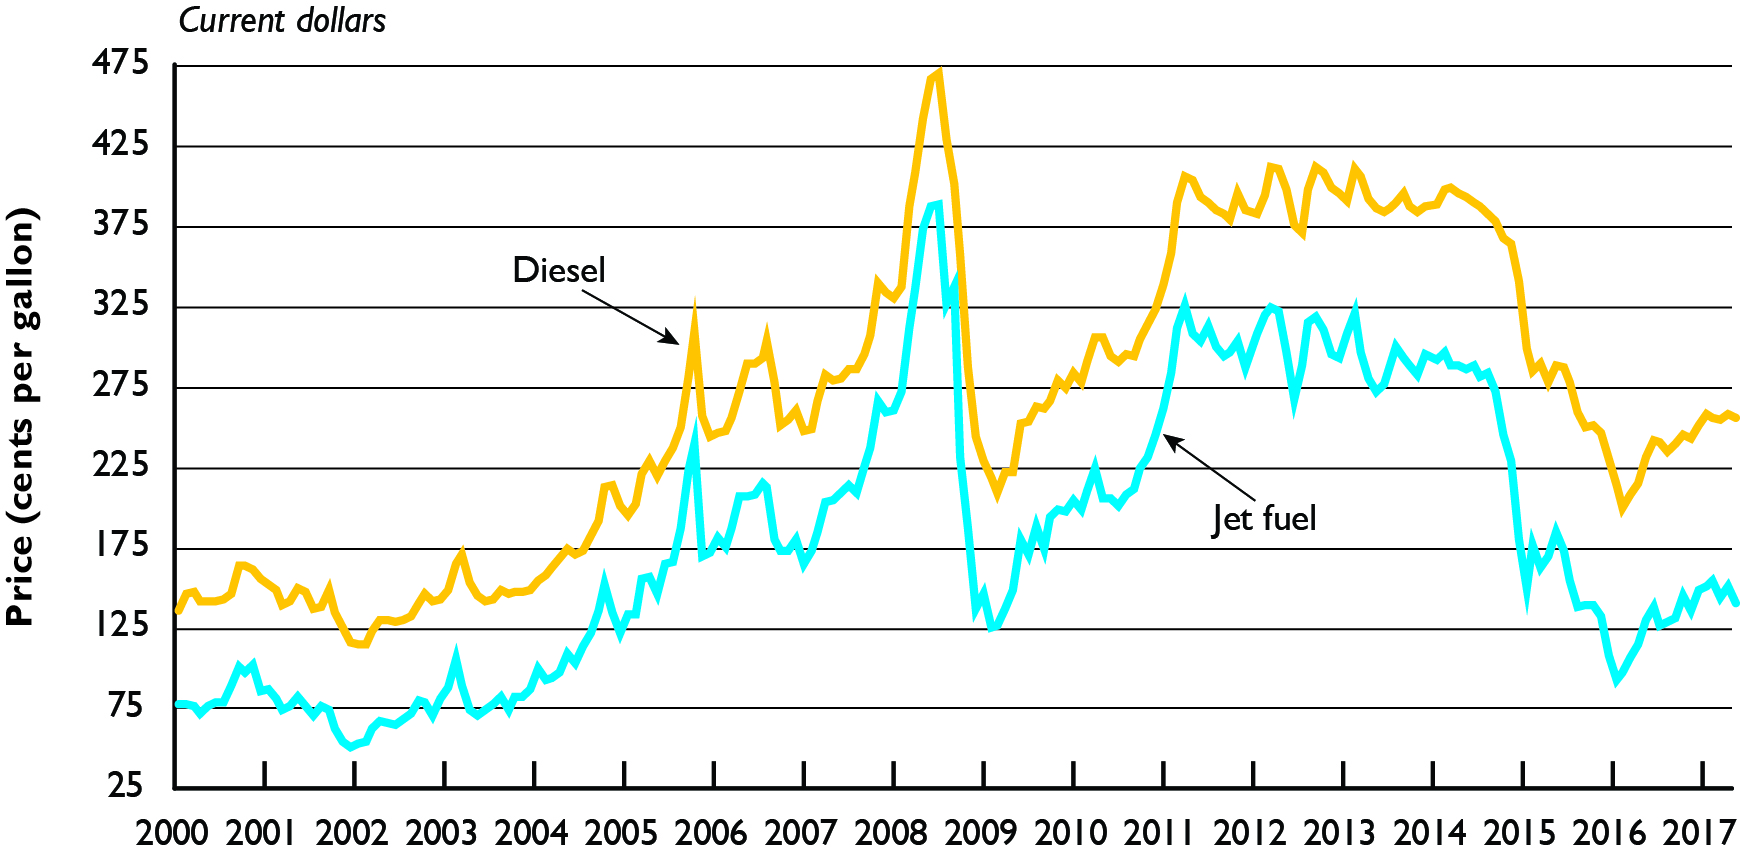 589de85c96 Monthly Diesel and Jet Fuel Prices  January 2000-June 2016